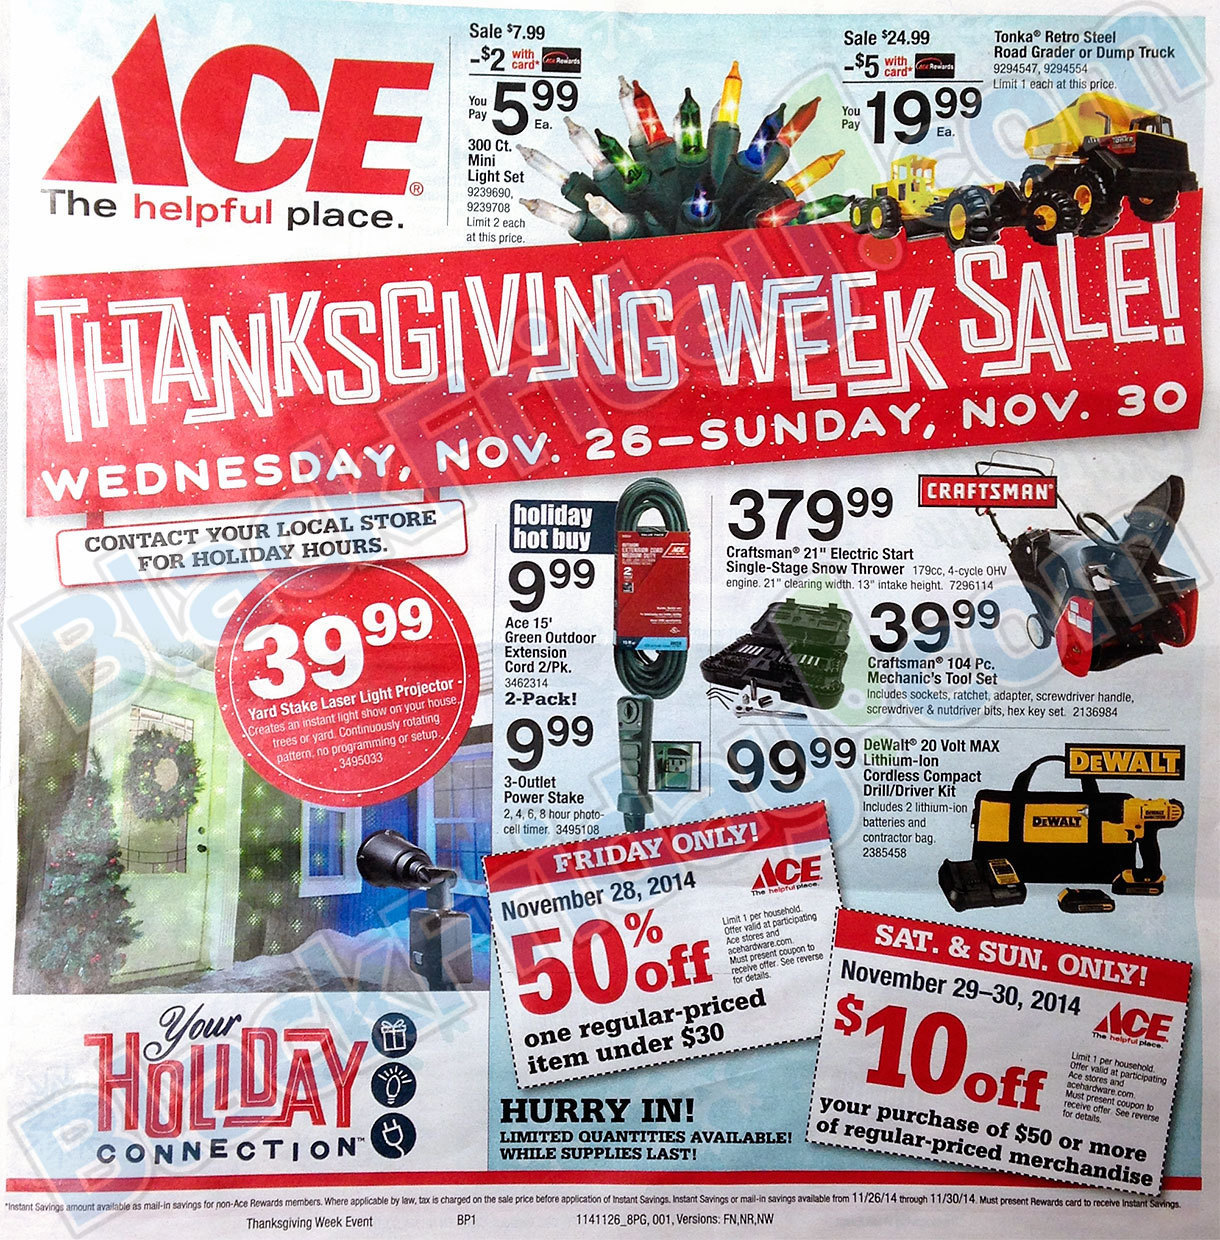 May The 4th Be With You Deals: 2014 Ace Hardware Black Friday Ad! (LEAKED